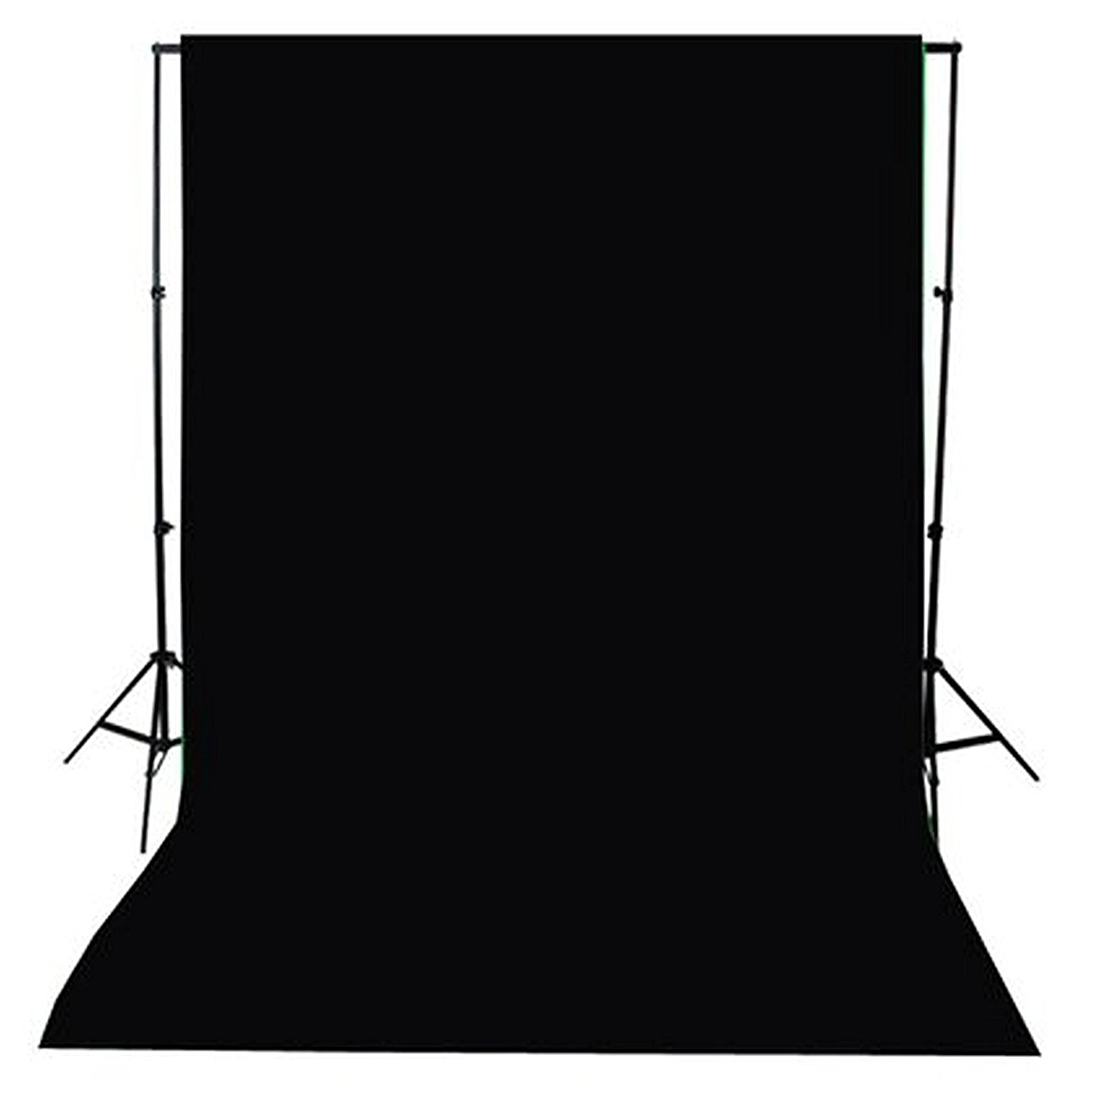 3x5ft Photography Backdrop Background Photo Stand Cotton Non-woven Studio Photoprop тетрадь для записи 48л а5 клетка хатбер синяя на скрепке в полимер обл